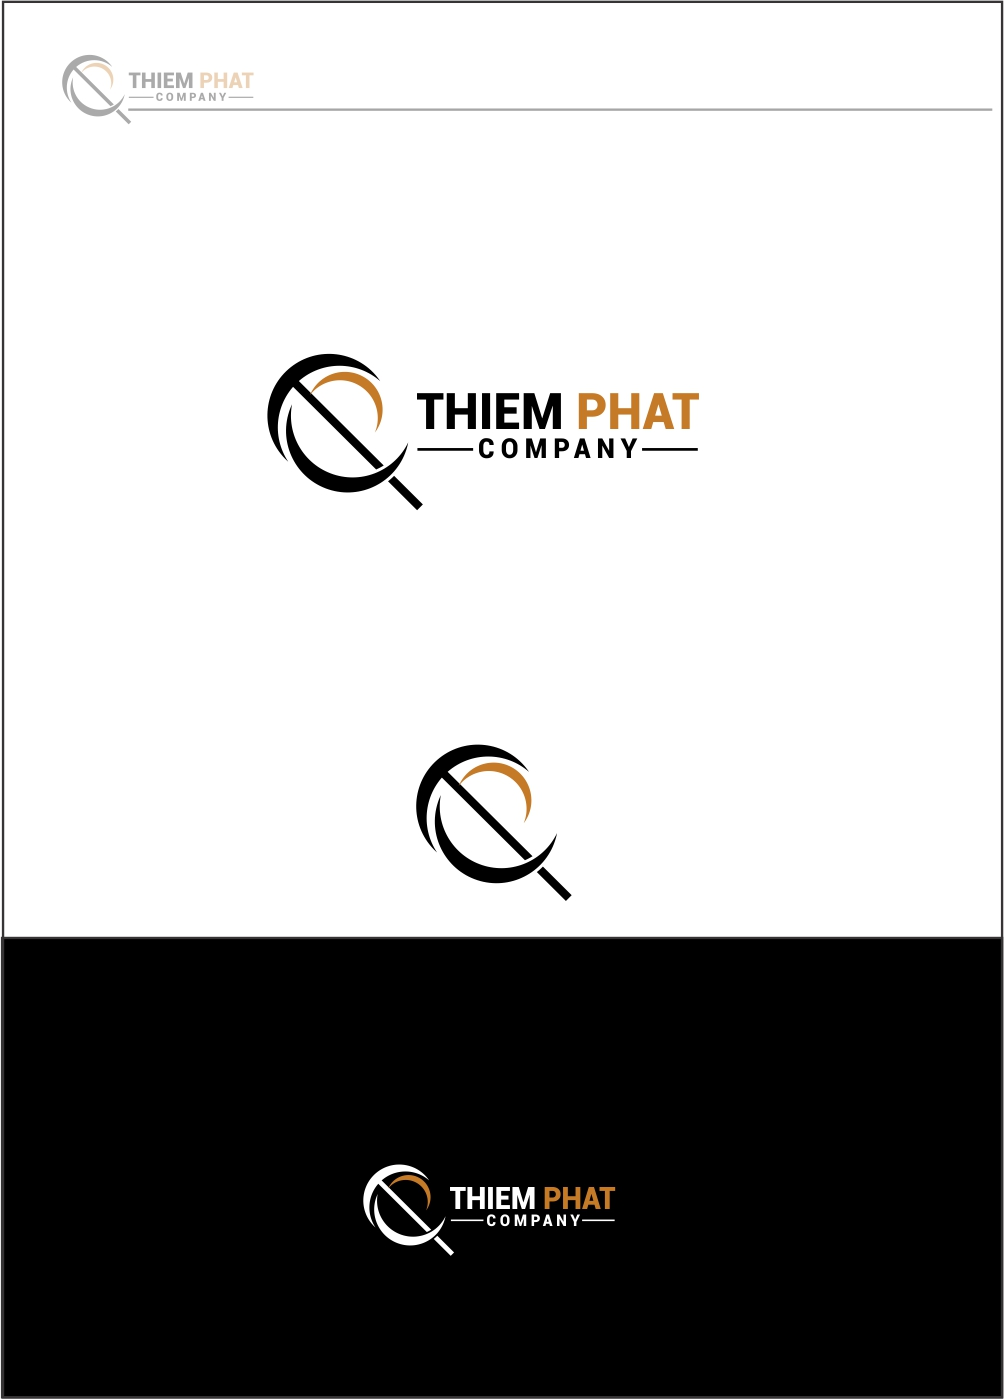 Logo Design by ian69 - Entry No. 104 in the Logo Design Contest New Logo Design for Thiem Phat company.